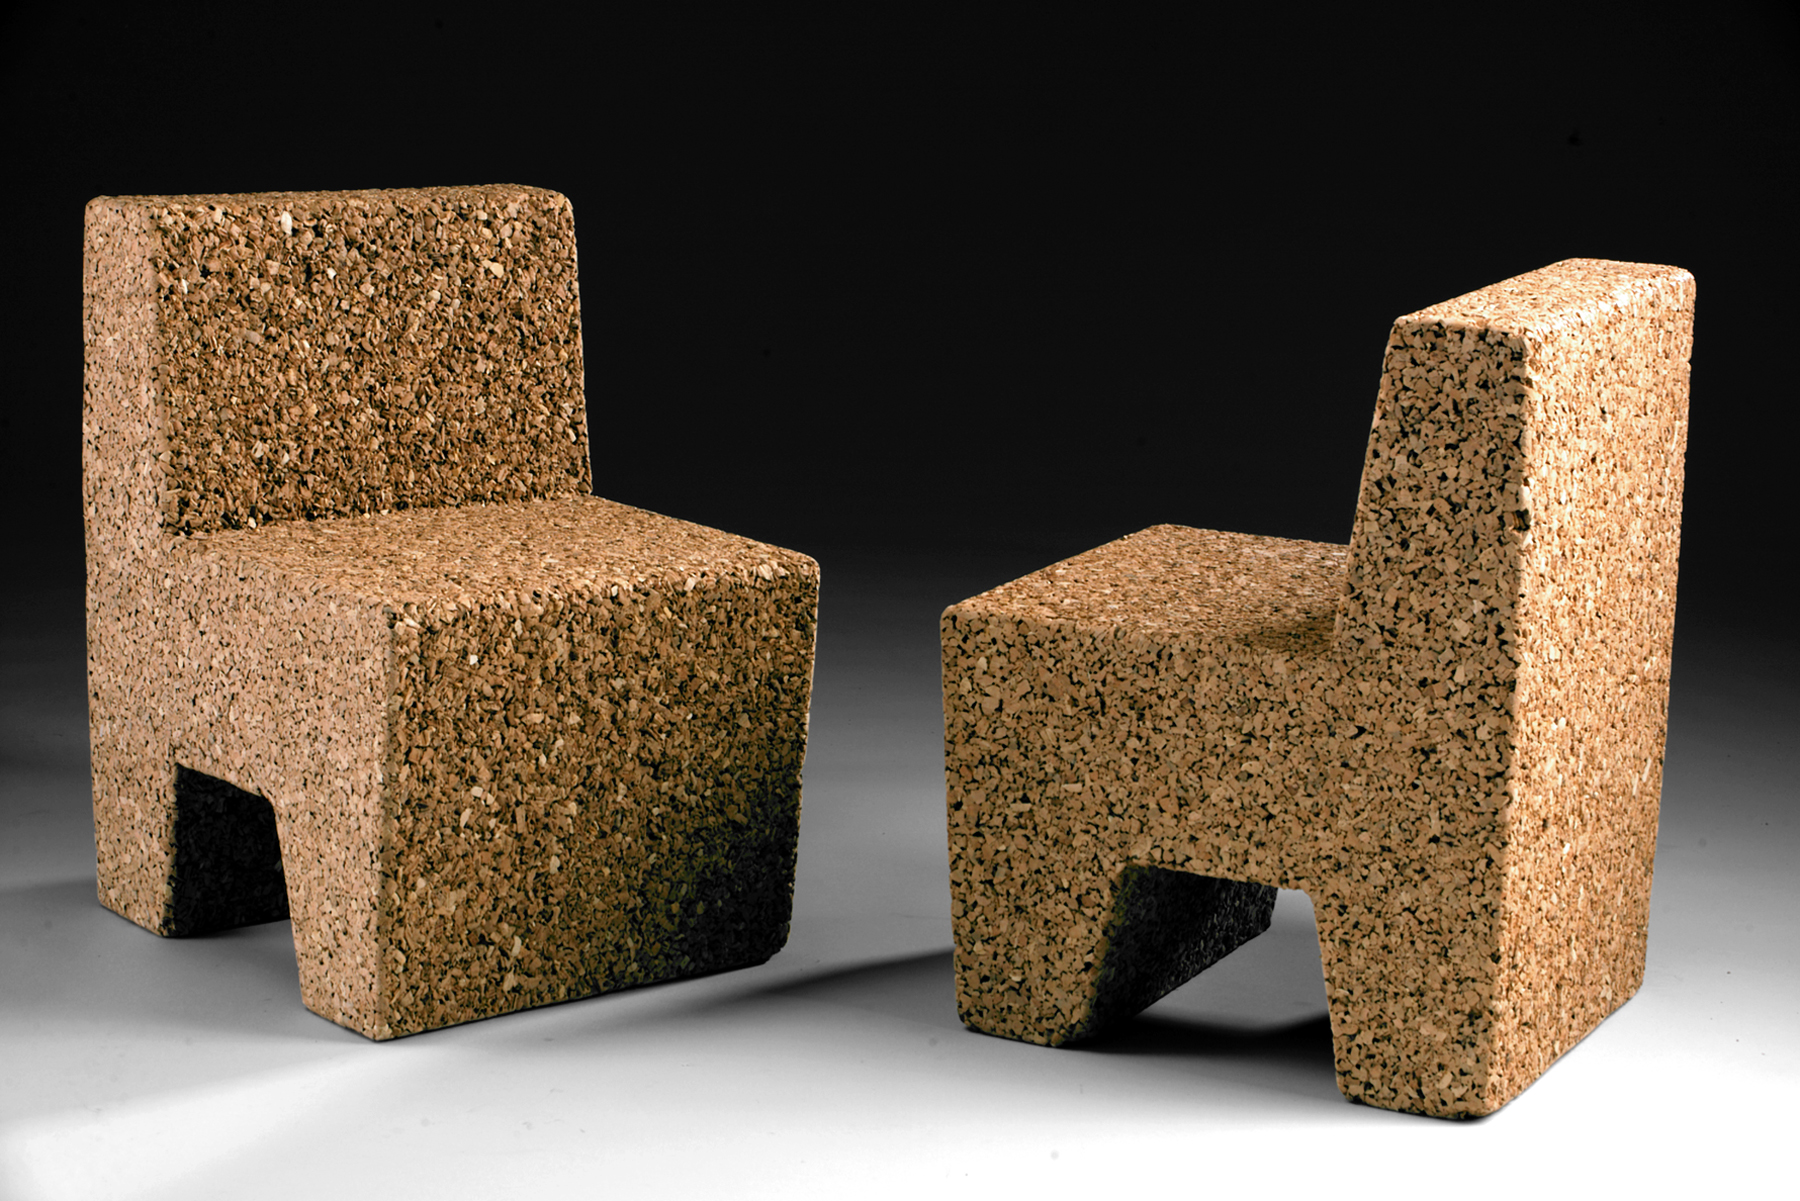 "Cub children's chair - 2005   18""H x 13""W x 13""D - Hand-cast recycled cork  This small chair is the result of our studio experiments into casting recycled cork. A single volume formed from granulated corks, these children's chairs have a smooth, sanded texture on the sides and a rough, engaging texture on the front and back.  Indoor use only. Available by custom order."